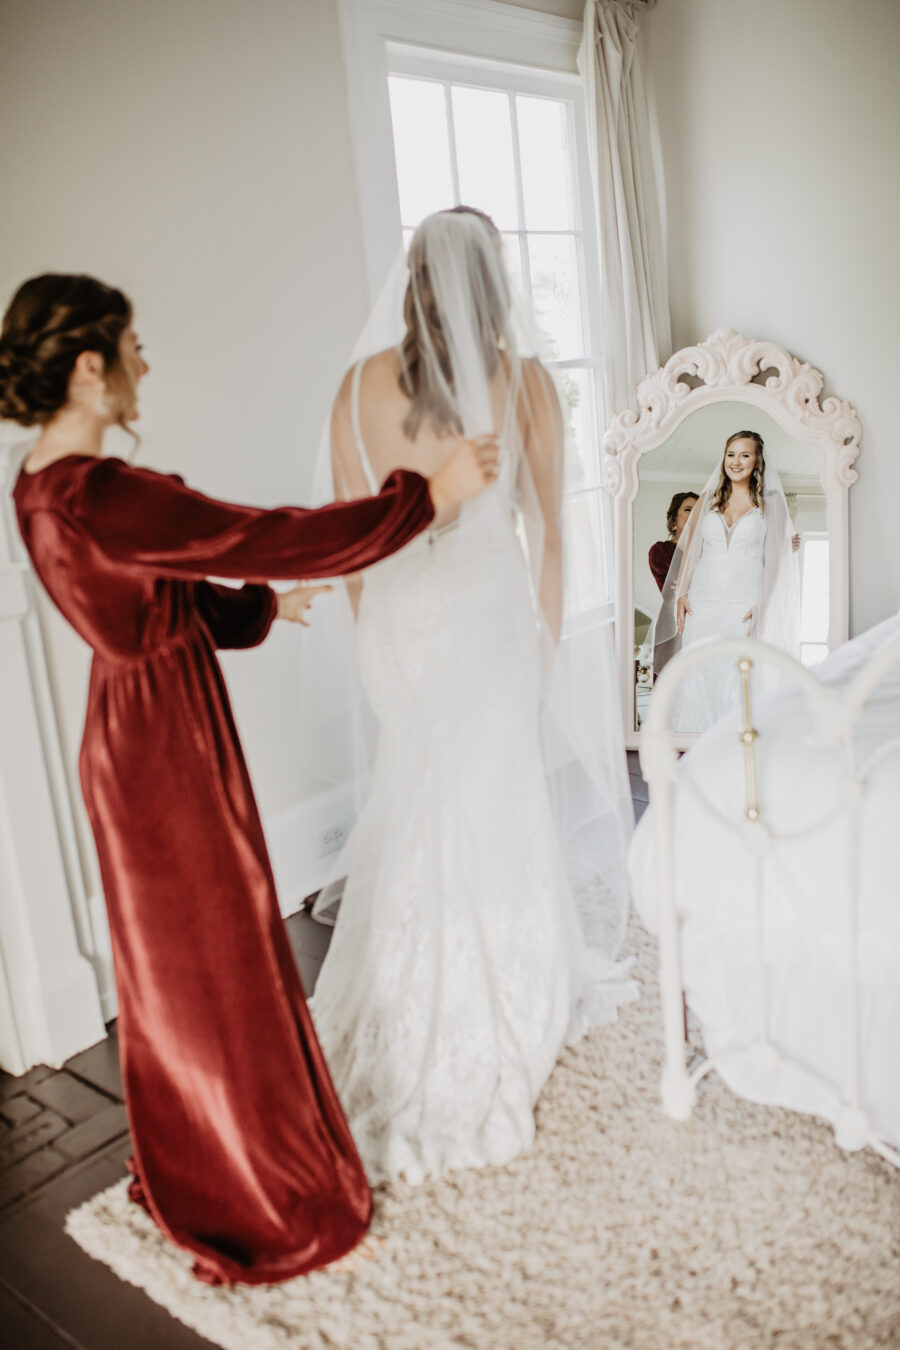 Getting ready wedding photography: Stunning Fall Styled Shoot at Promise Manor featured on Nashville Bride Guide